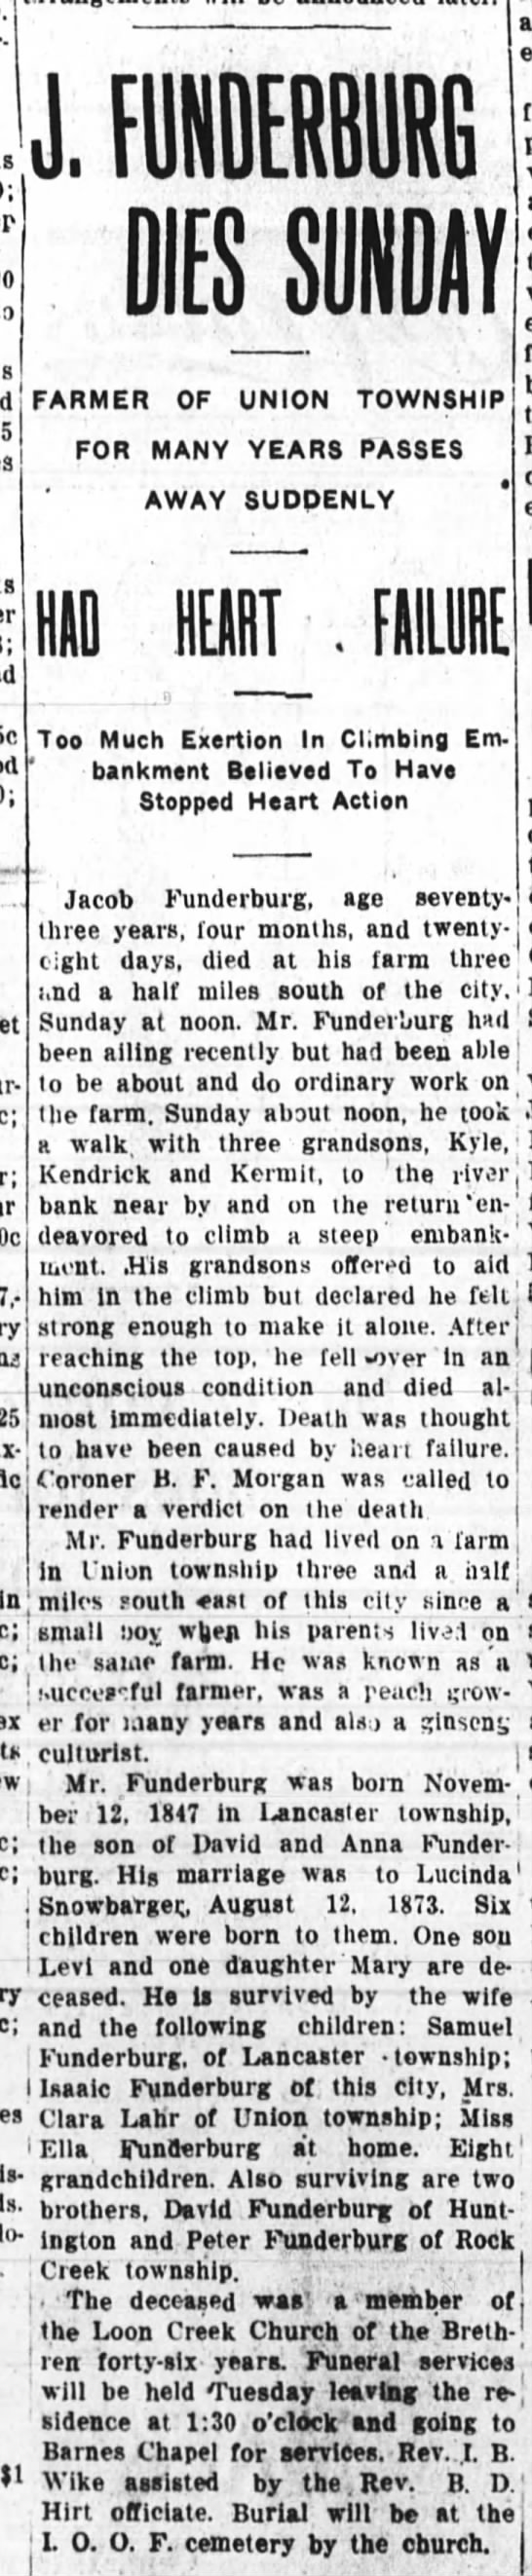 Jacob funderburg obit 11 apr 1921